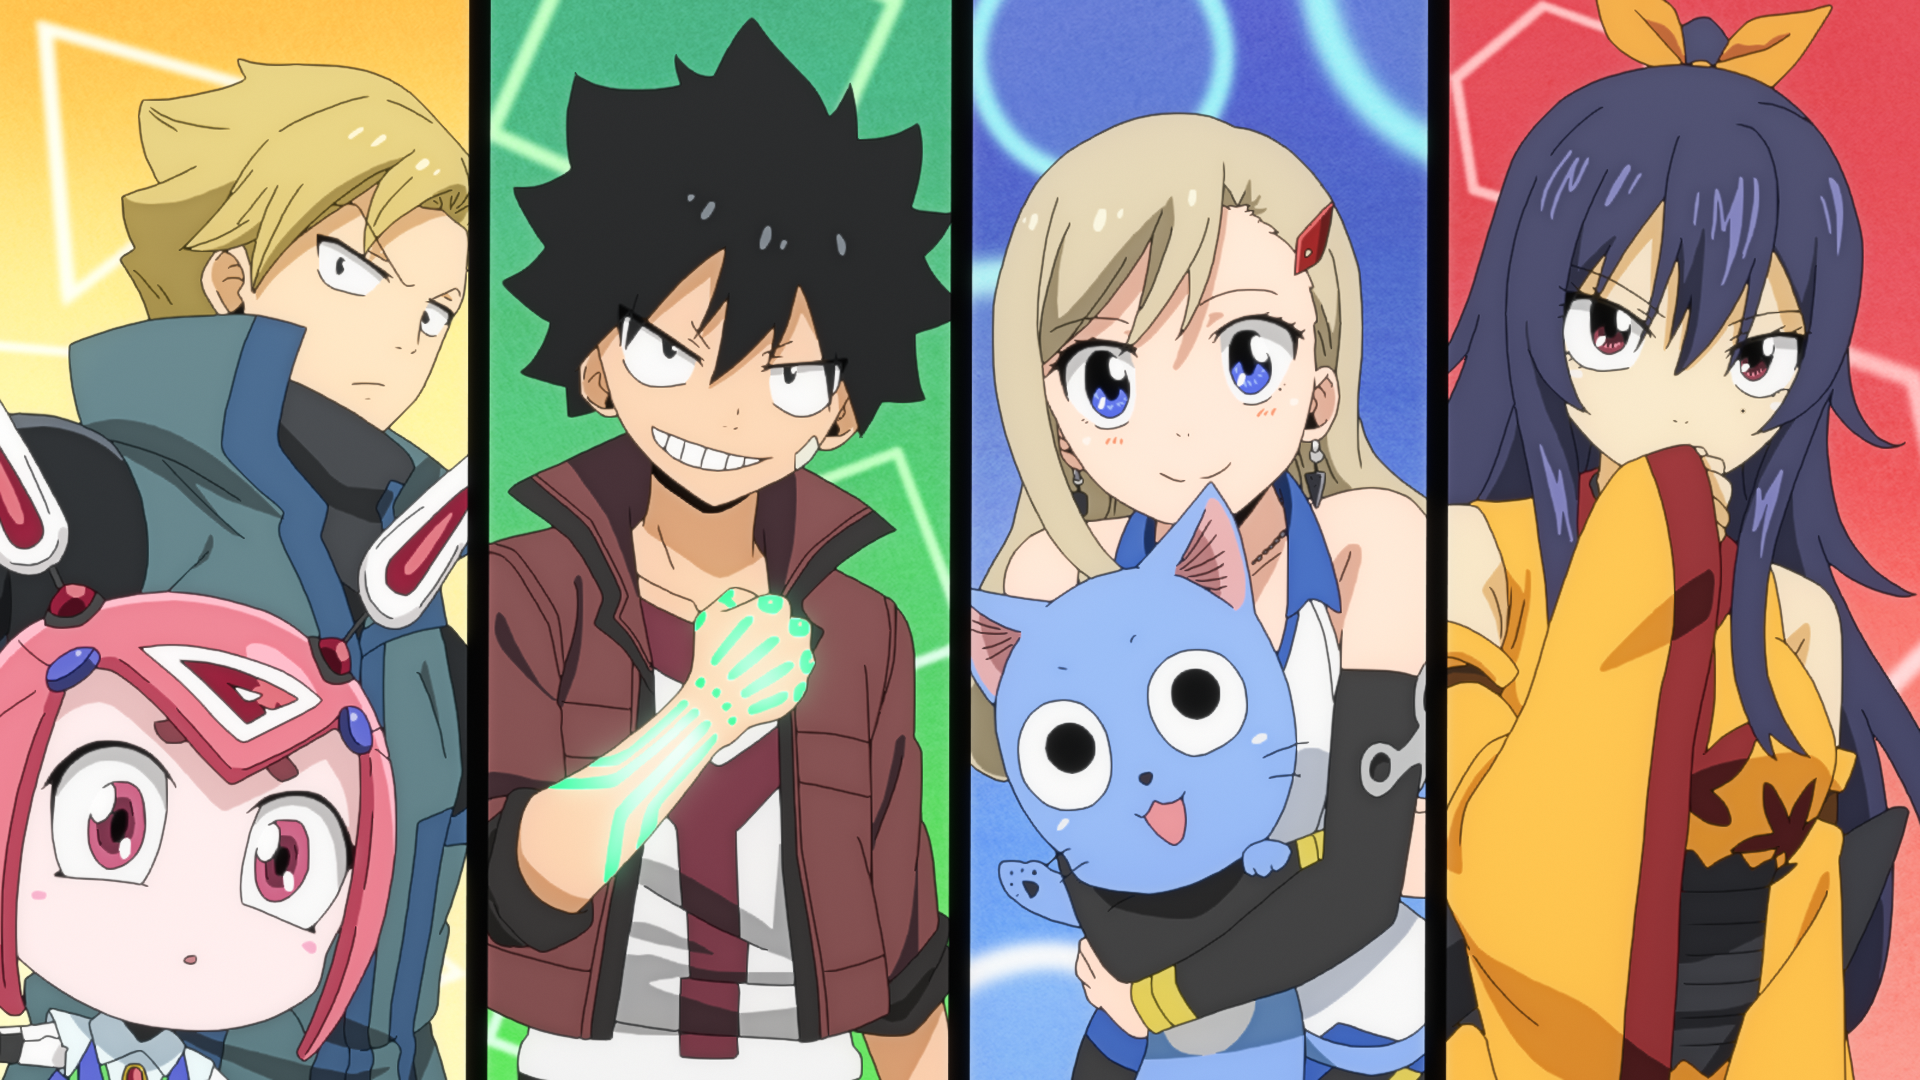 Edens Zero: When is Episode 19 Scheduled to Release, and Where Can Fans Watch the Series?